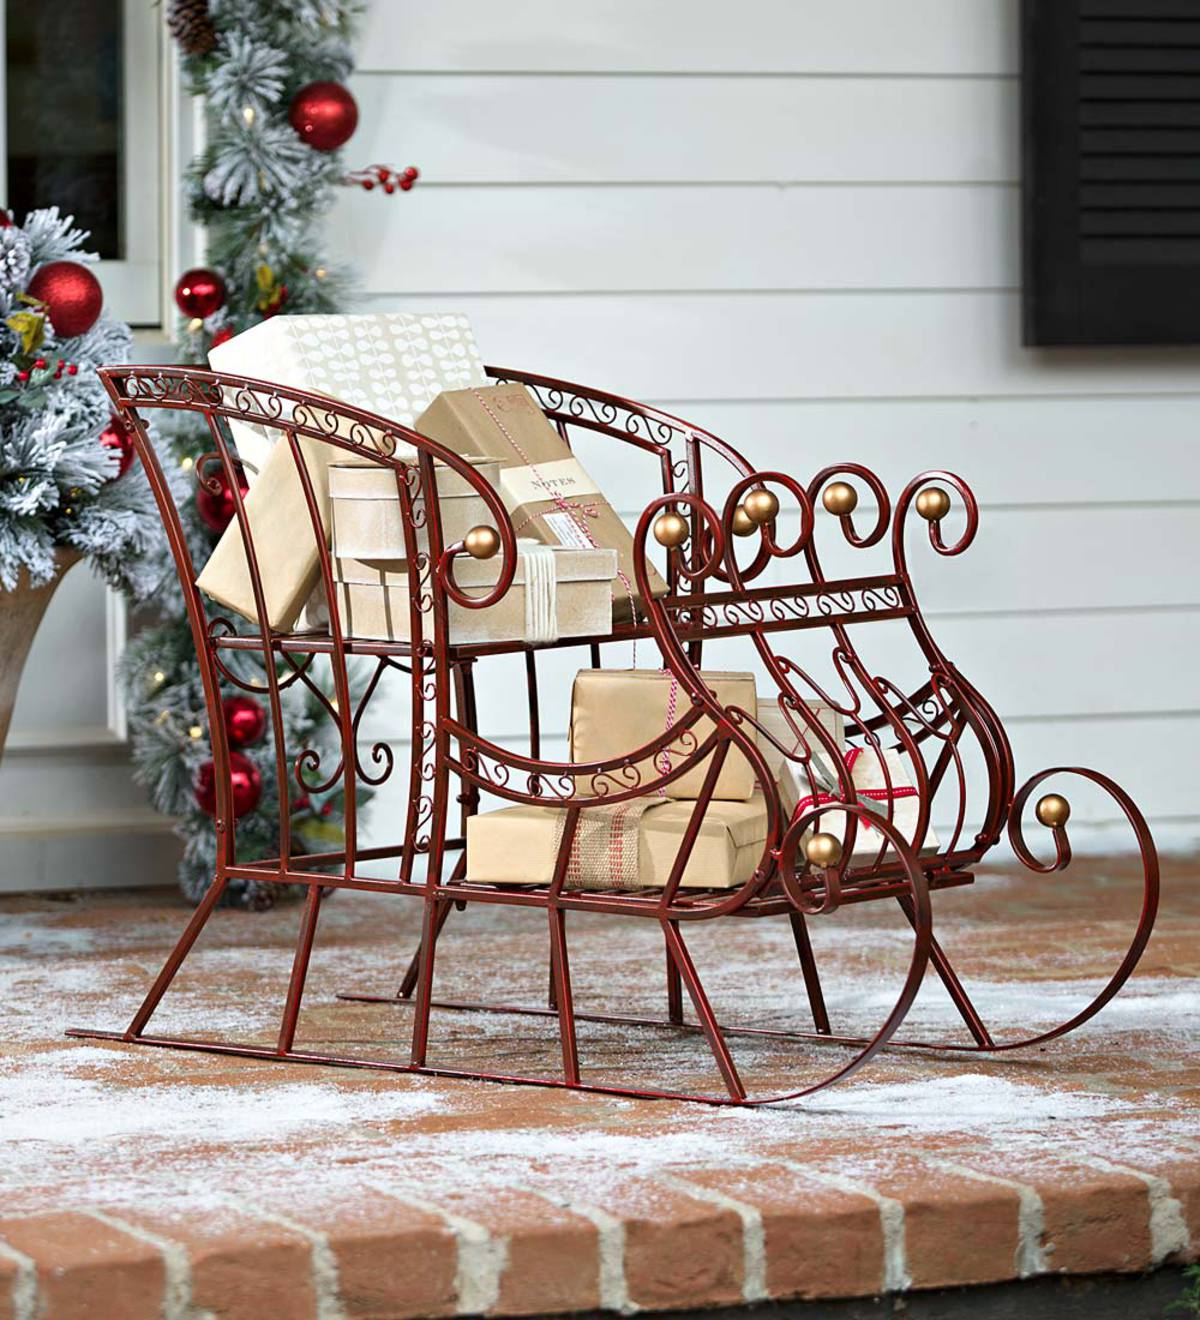 red metal holiday sleigh